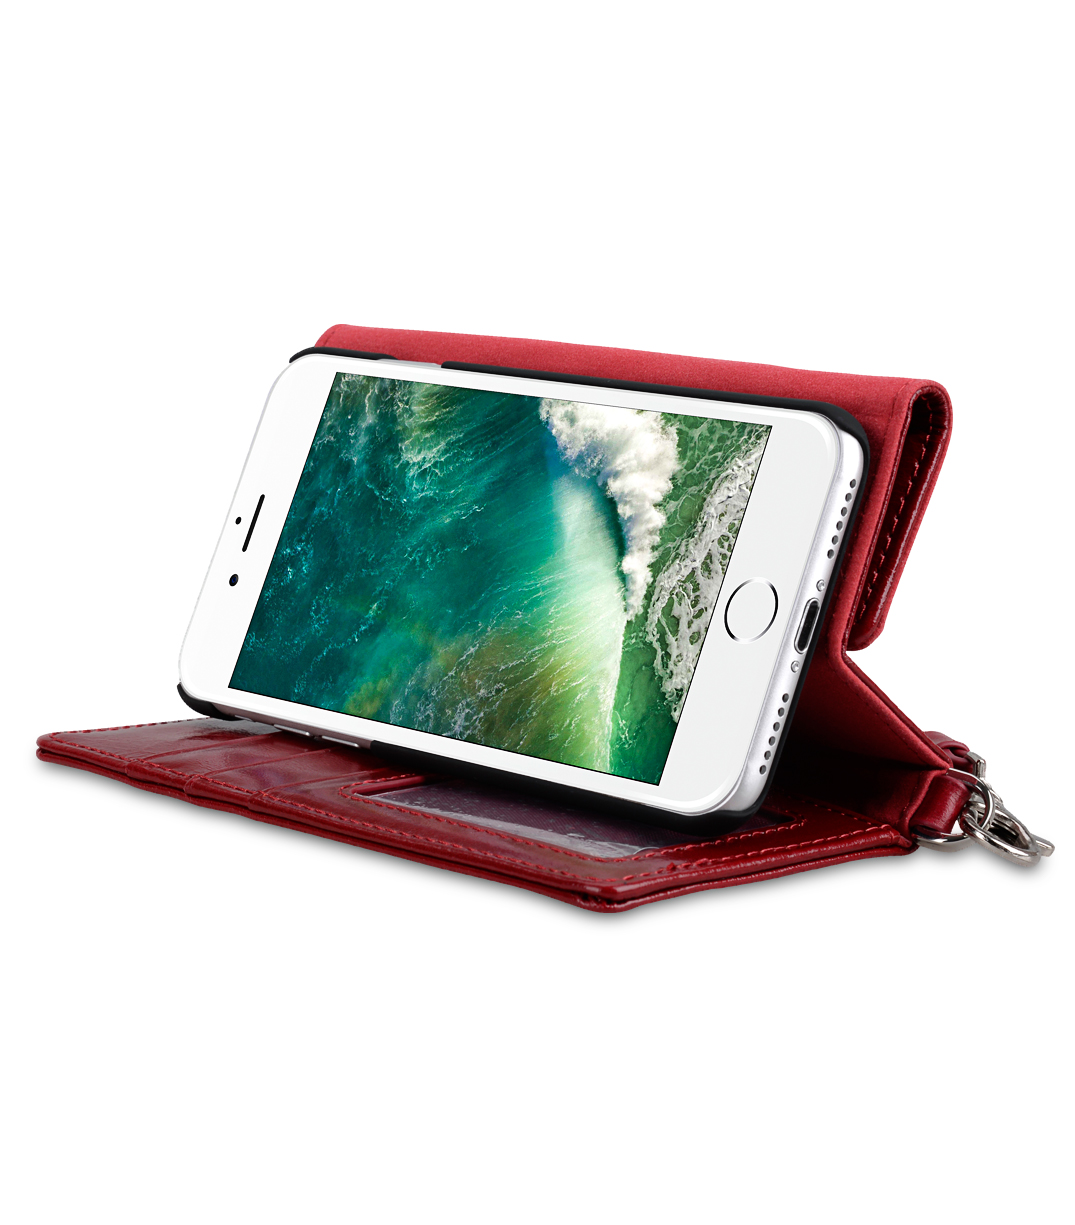 Melkco Fashion Folio Mappe Case for Apple iPhone 7 /8 (4.7') - (Red)